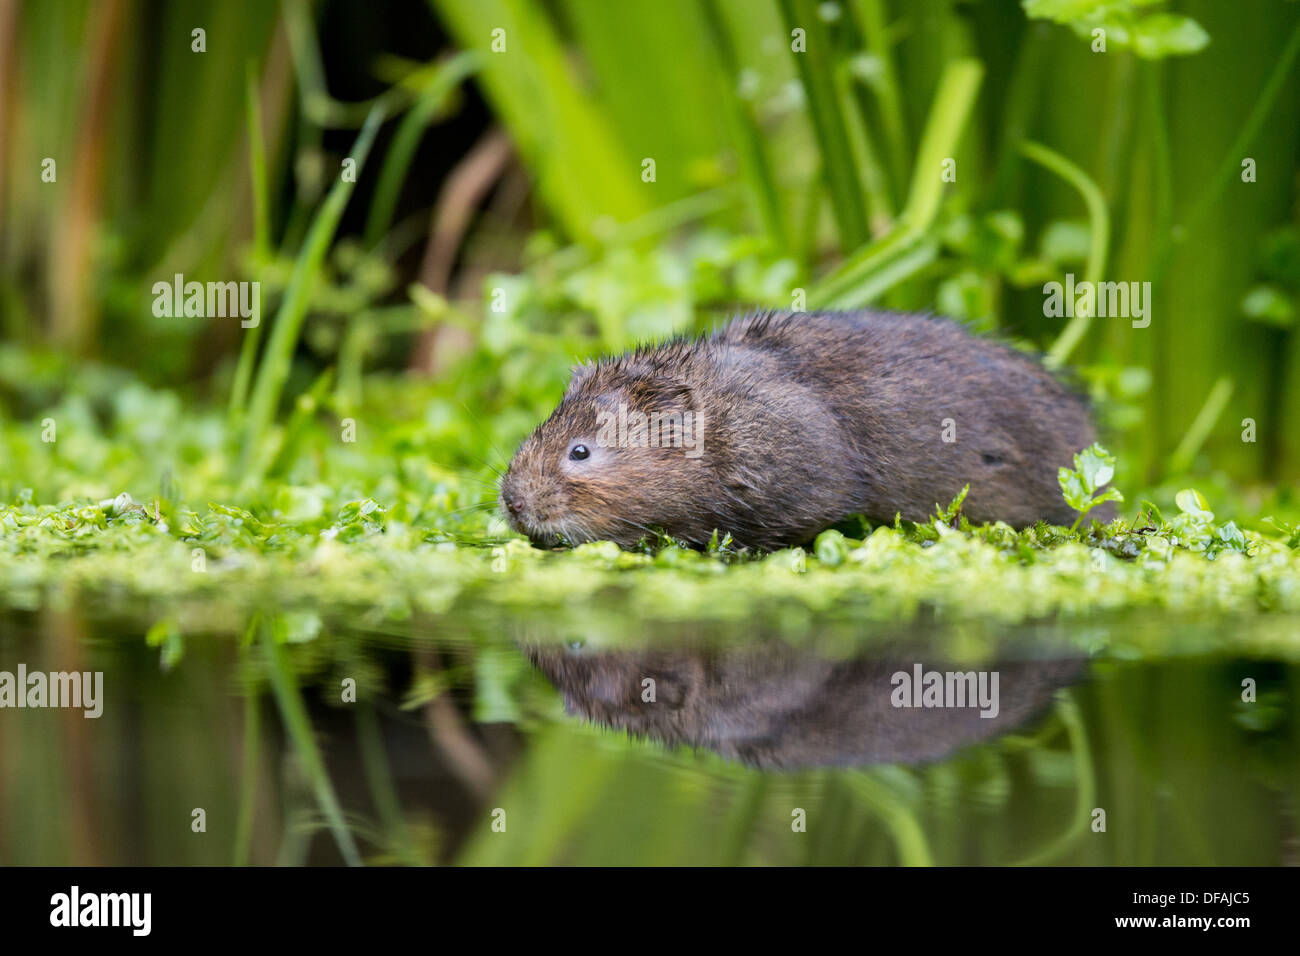 British Water Vole (Arvicola amphibius) among foliage in a river in Kent, England, UK - Stock Image